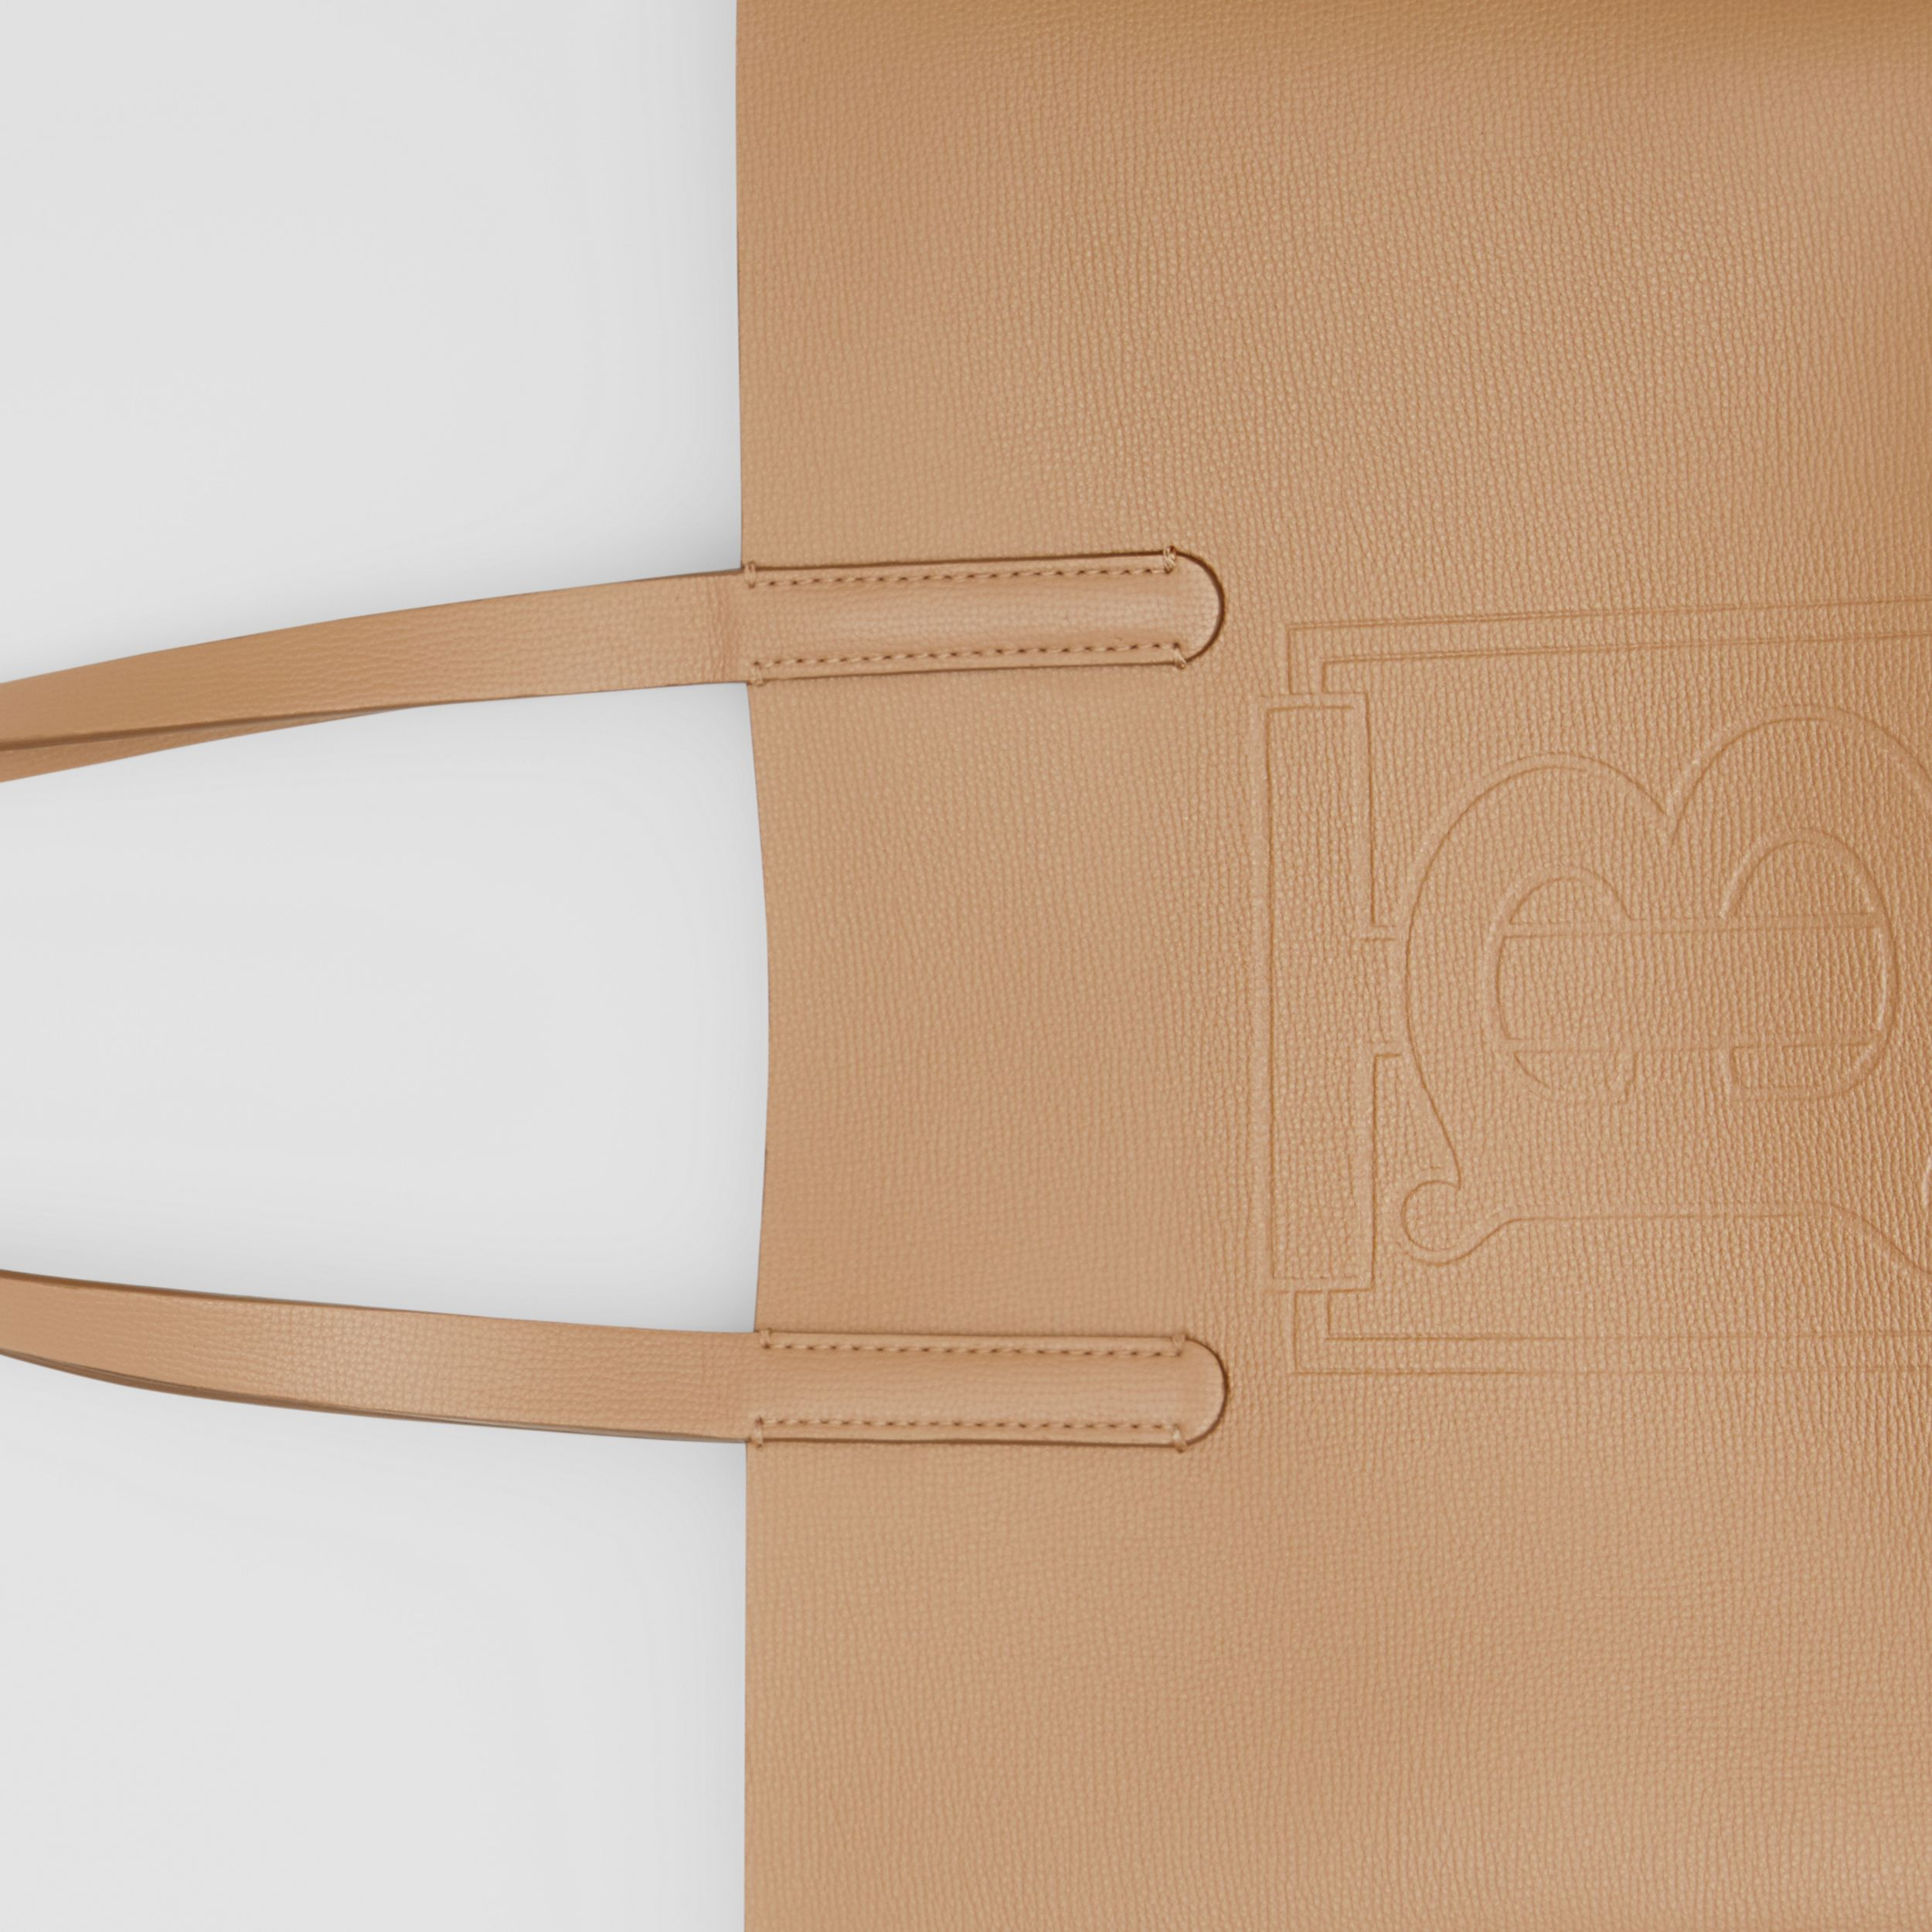 Embossed Monogram Motif Leather Tote in Camel - Women | Burberry - 2